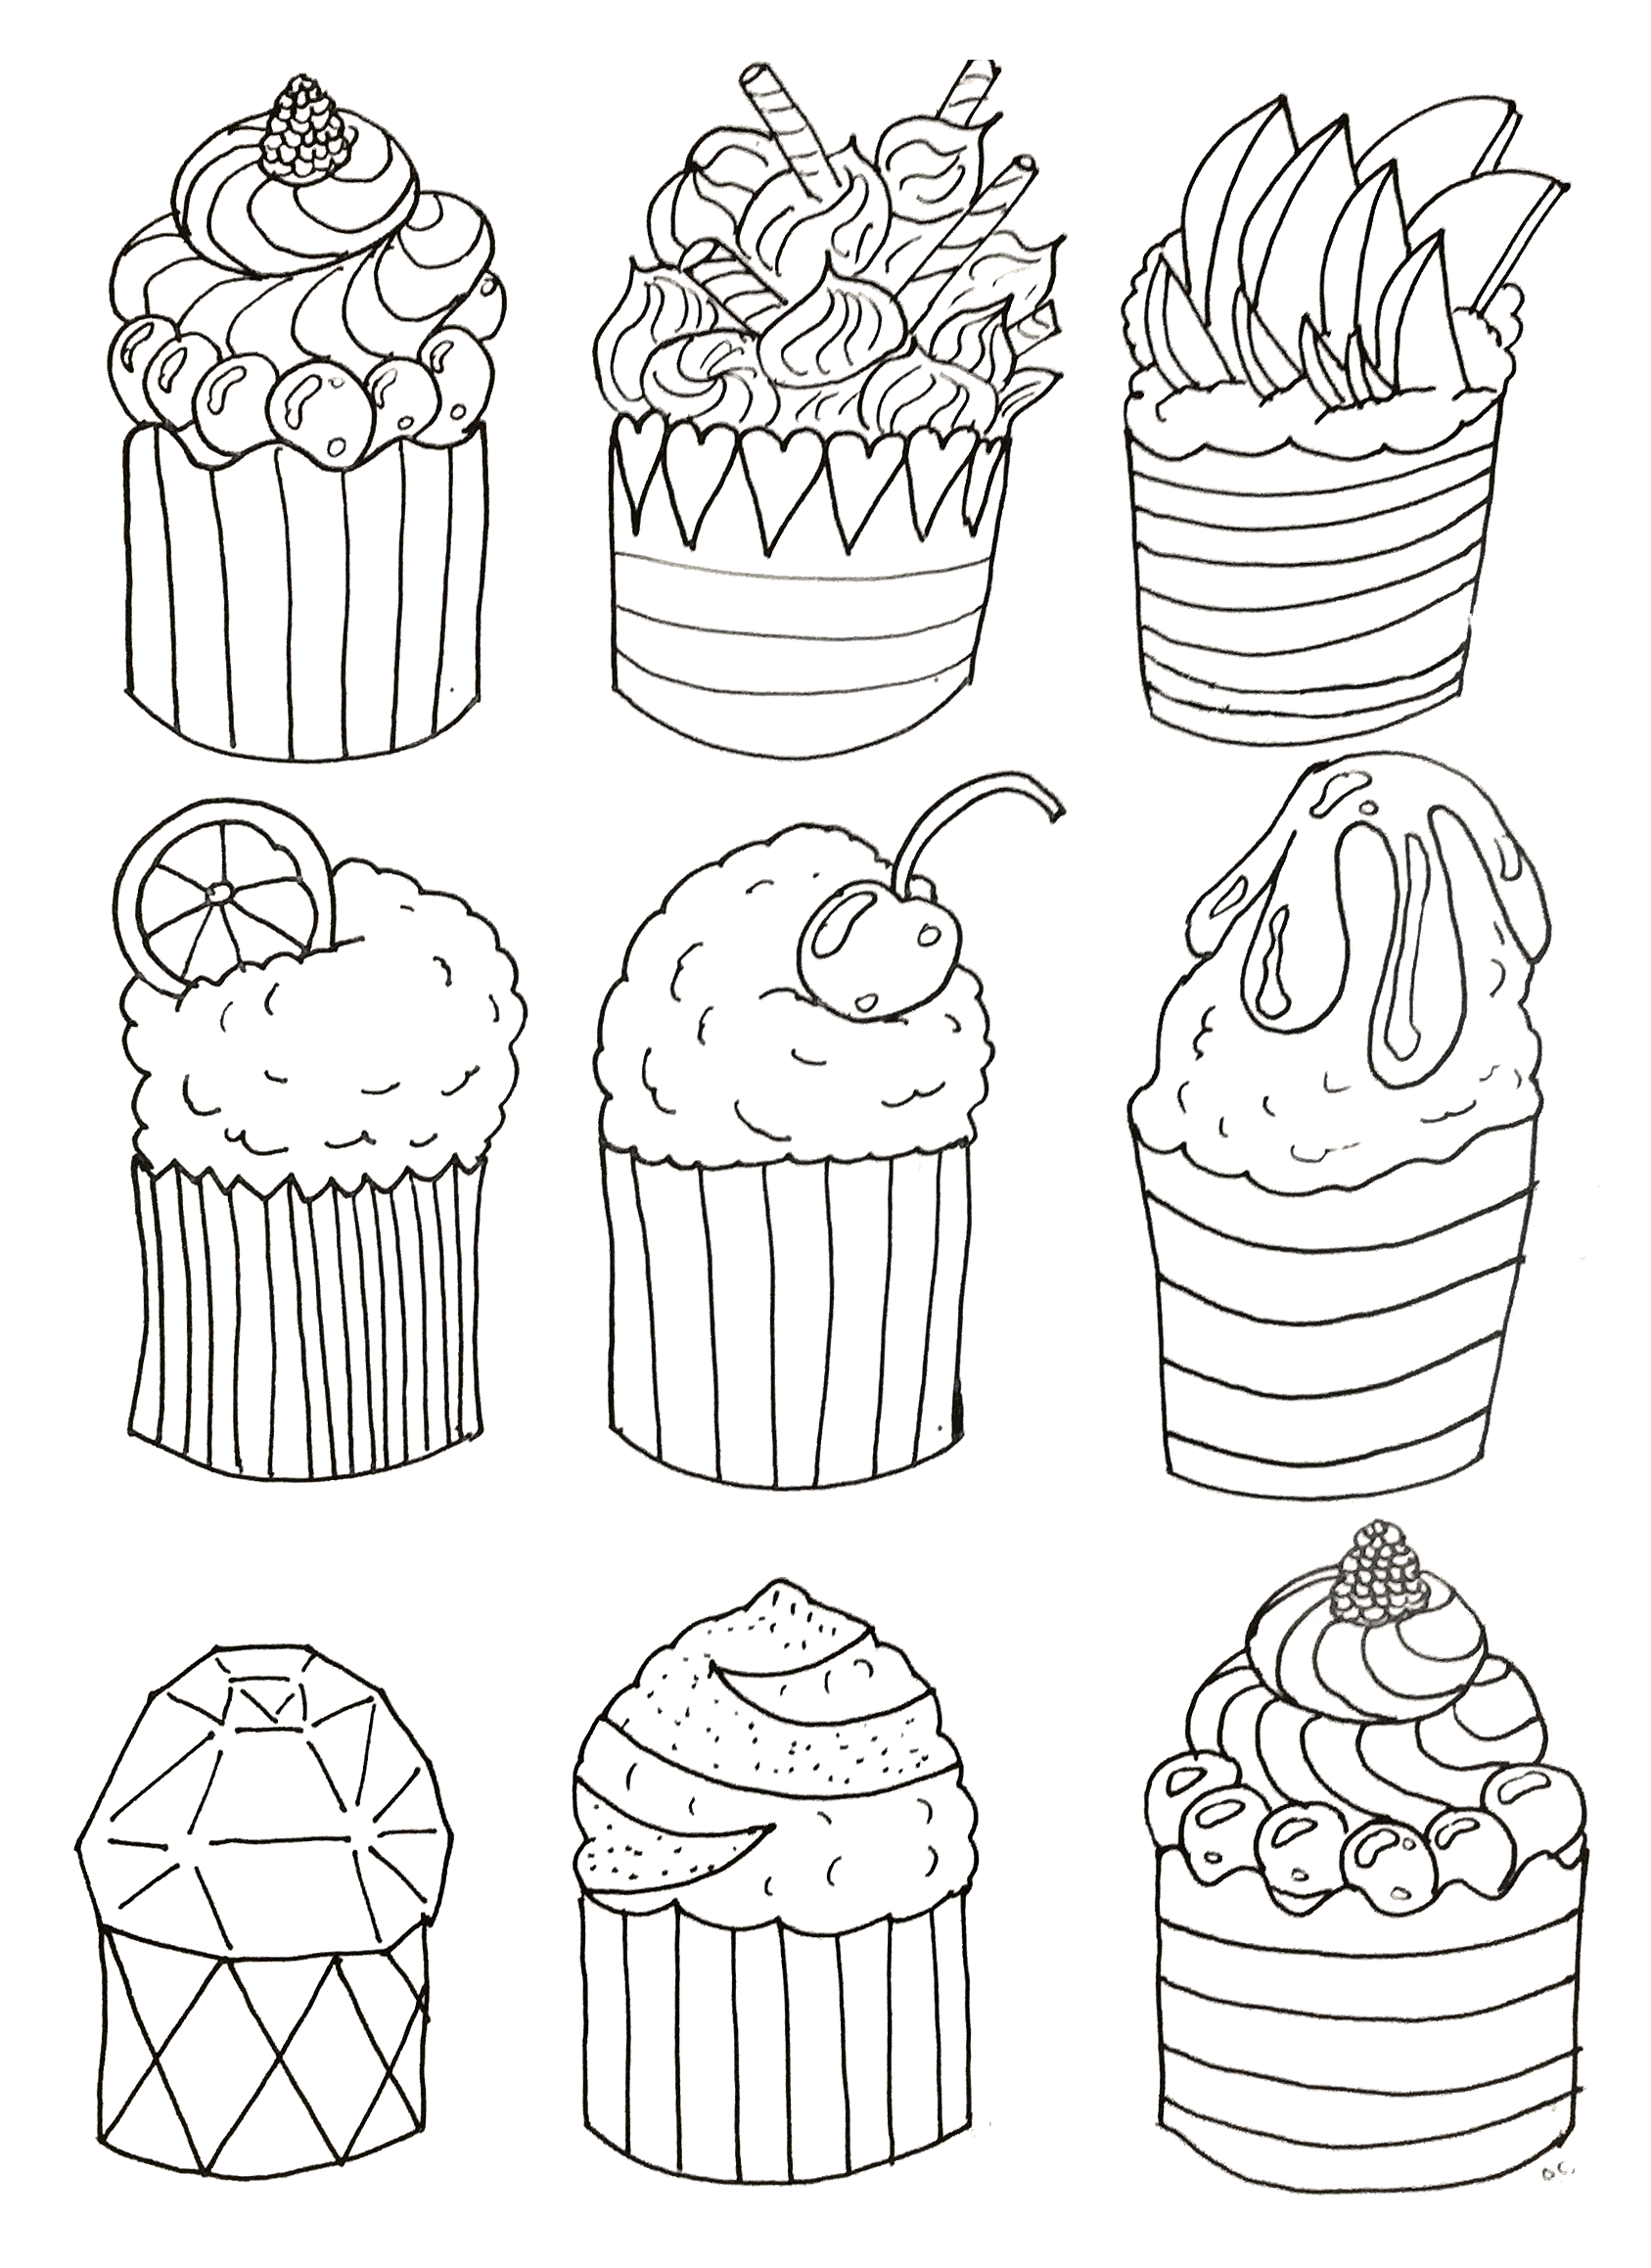 Simple cupcakes coloring page